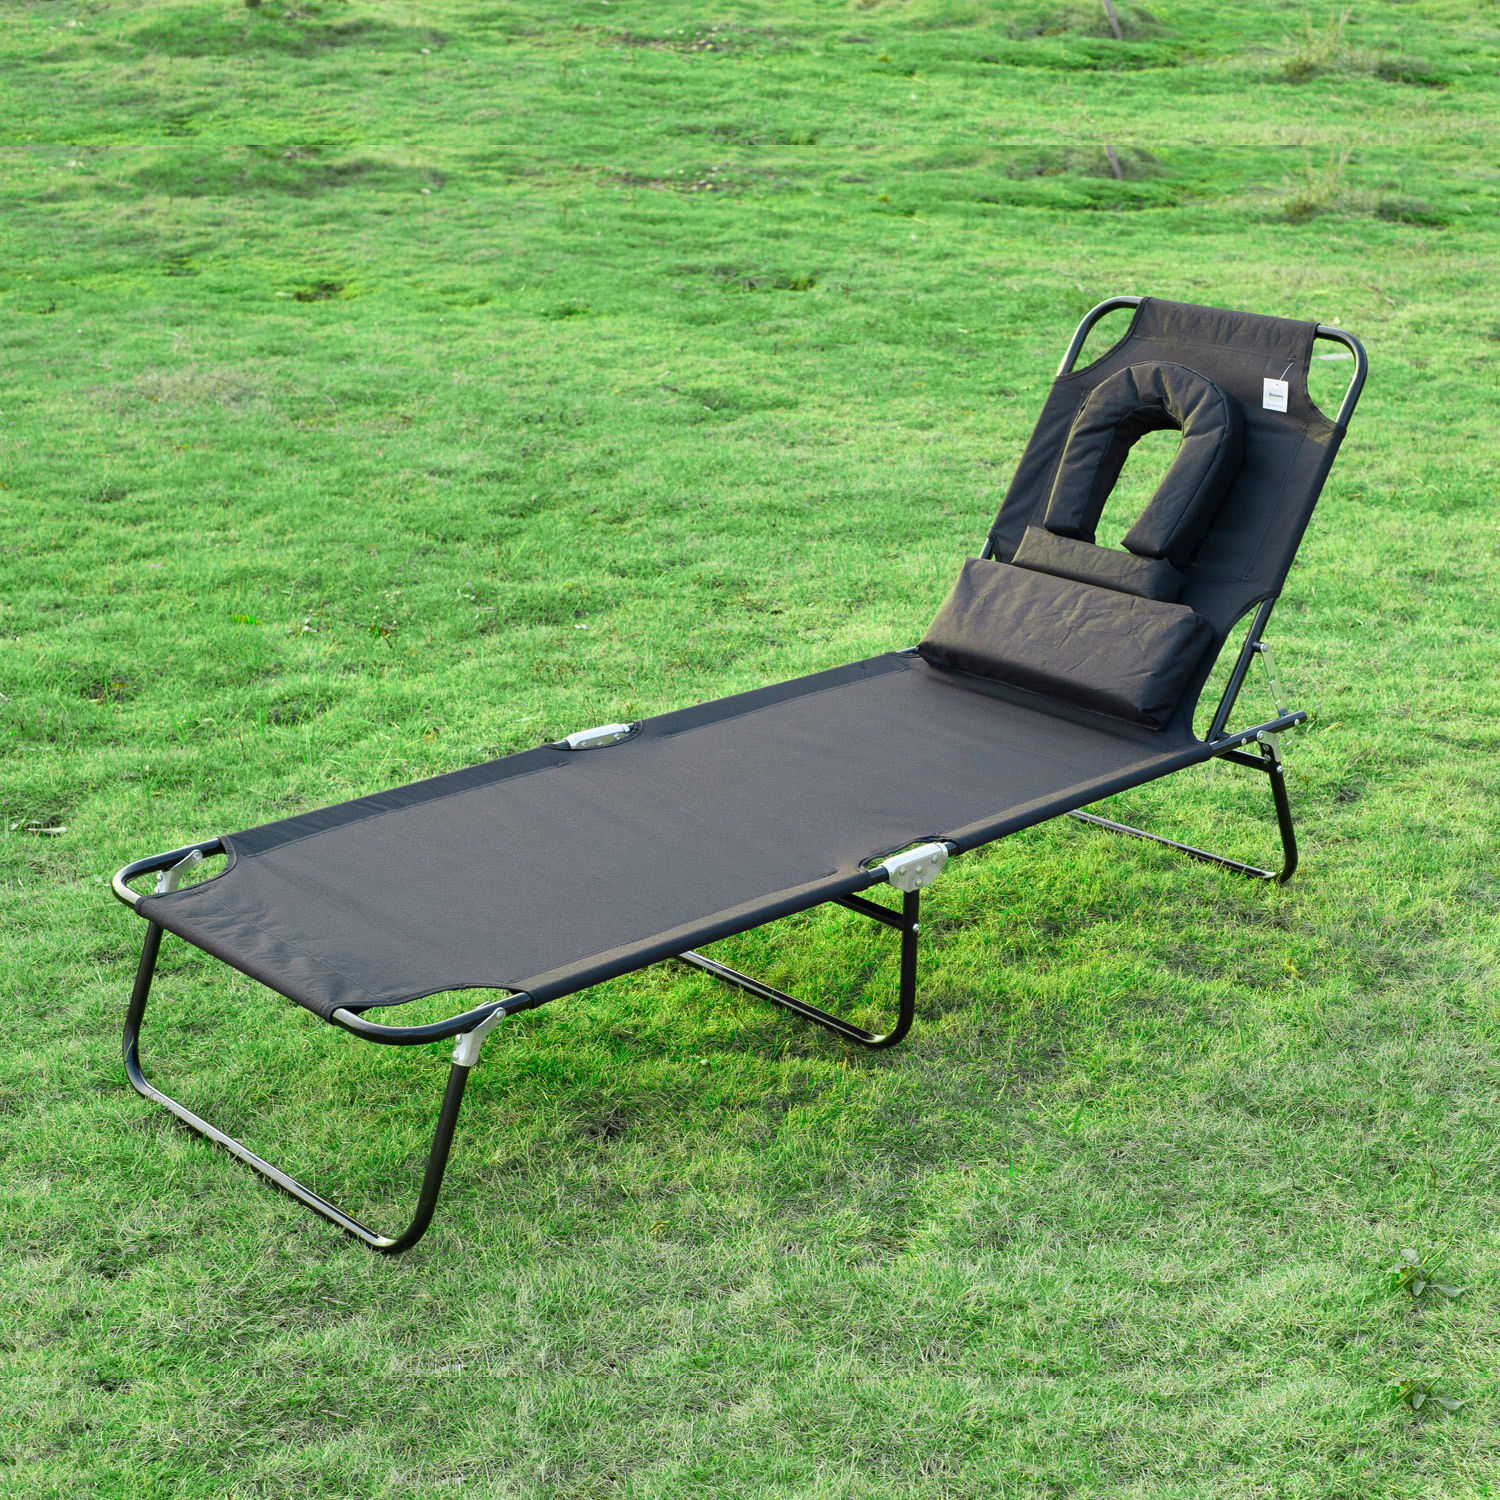 Outsunny 2pc Sun Lounger Reclining Folding Sunbed Chair Bed Head